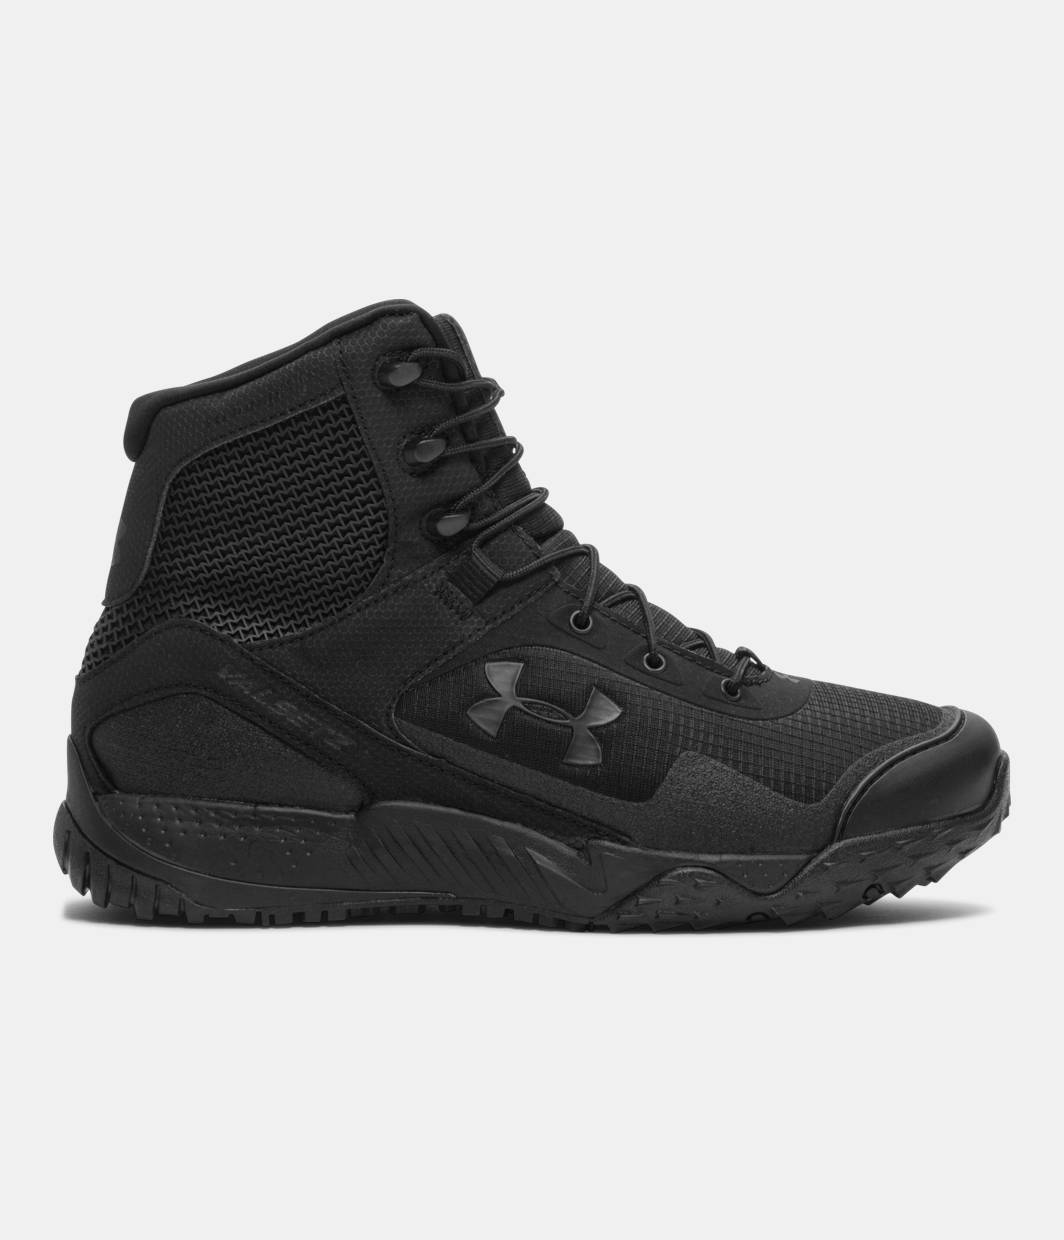 Under Armour UA Valsetz RTS Tactical